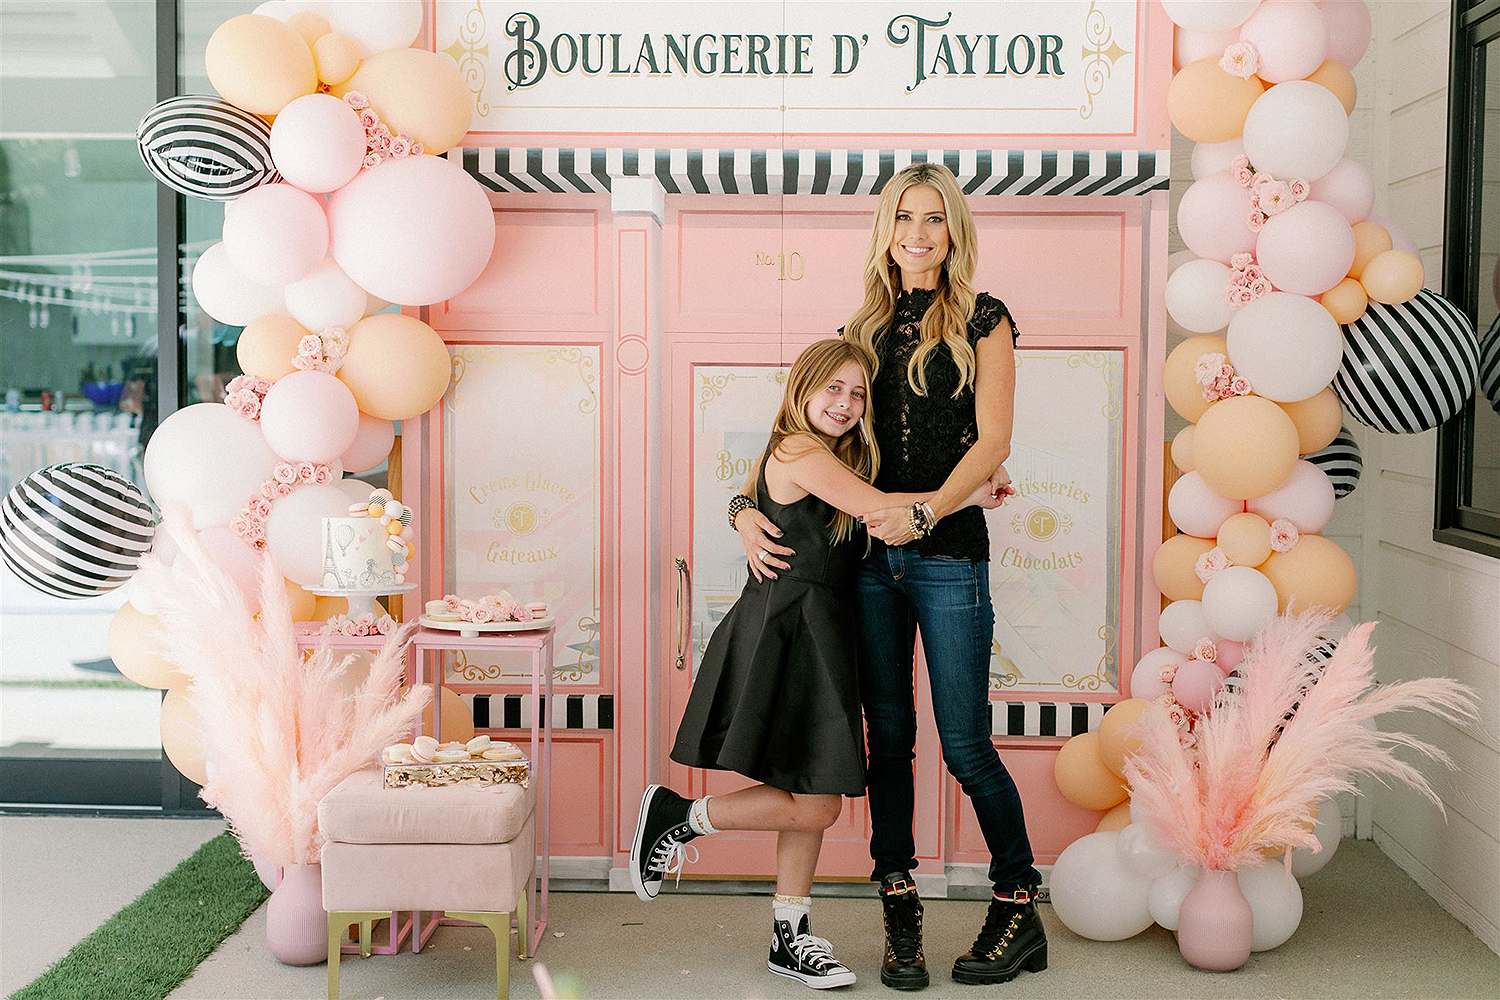 Christina Anstead's daughter Taylor birthday